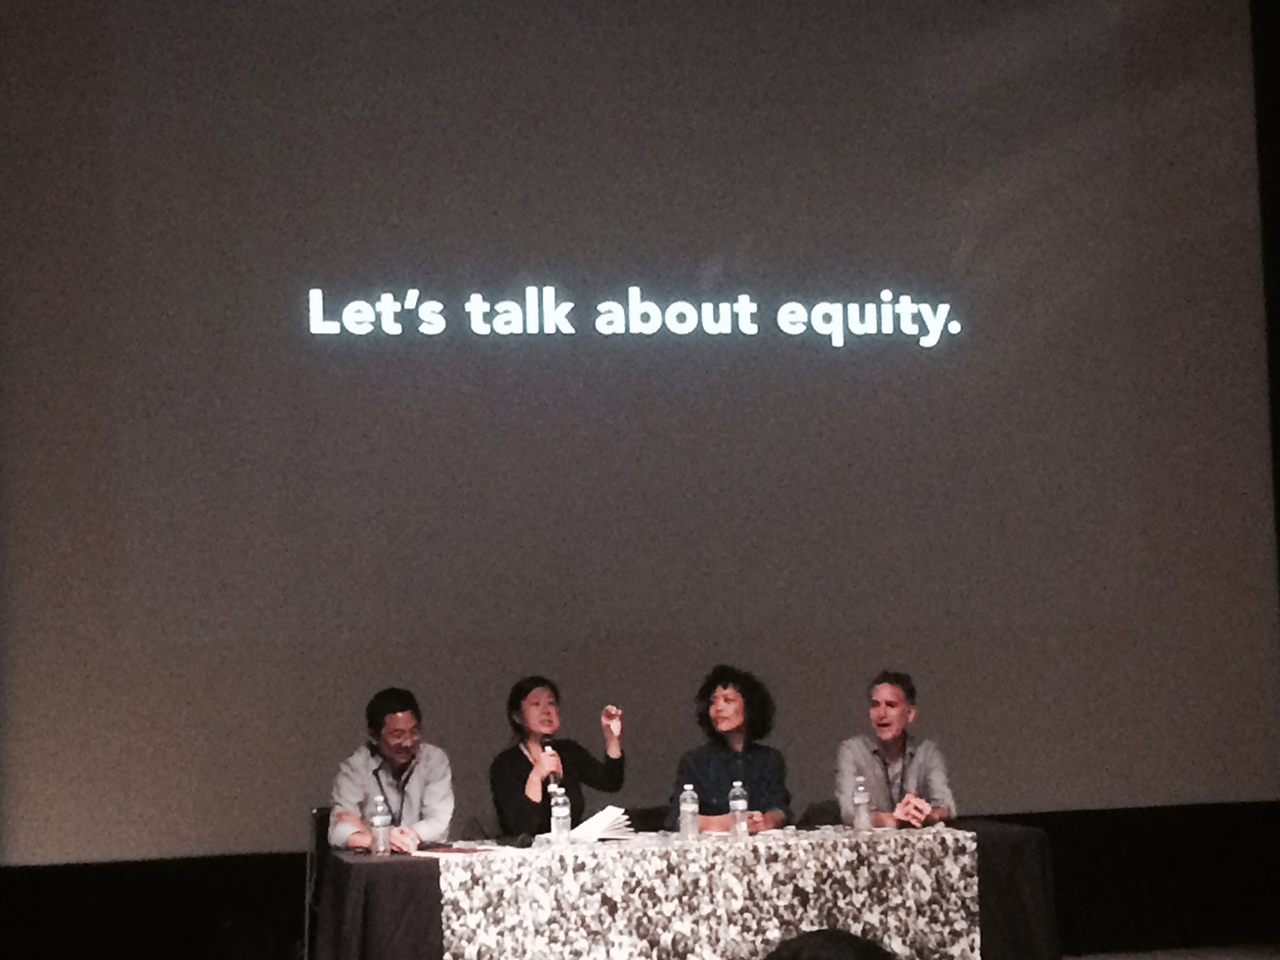 Panelists at the Ethics and Aesthetics of Place talk at Open Engagement (all photos by the author for Hyperallergic)